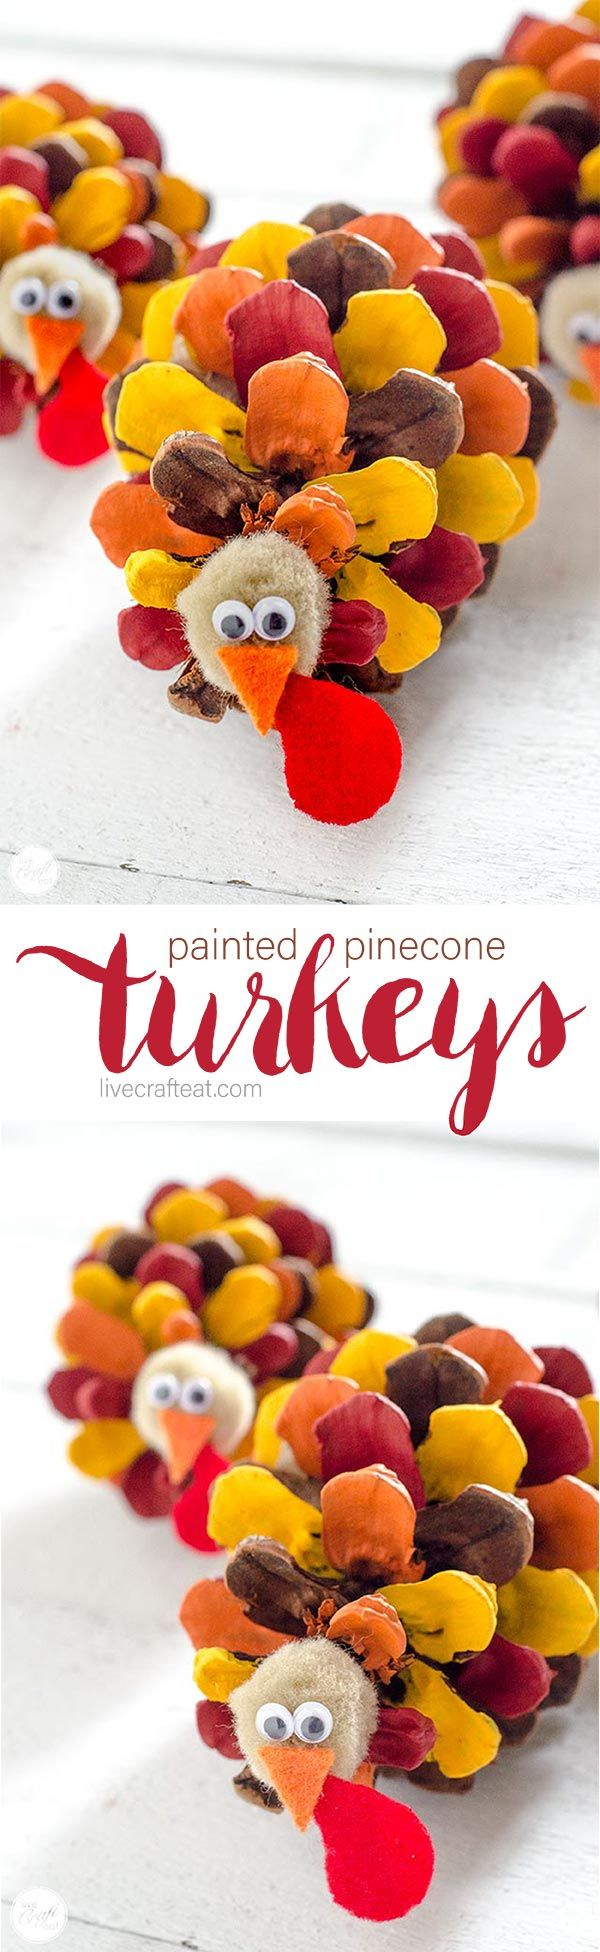 Painted Pinecone Turkeys - Thanksgiving Craft For Kids